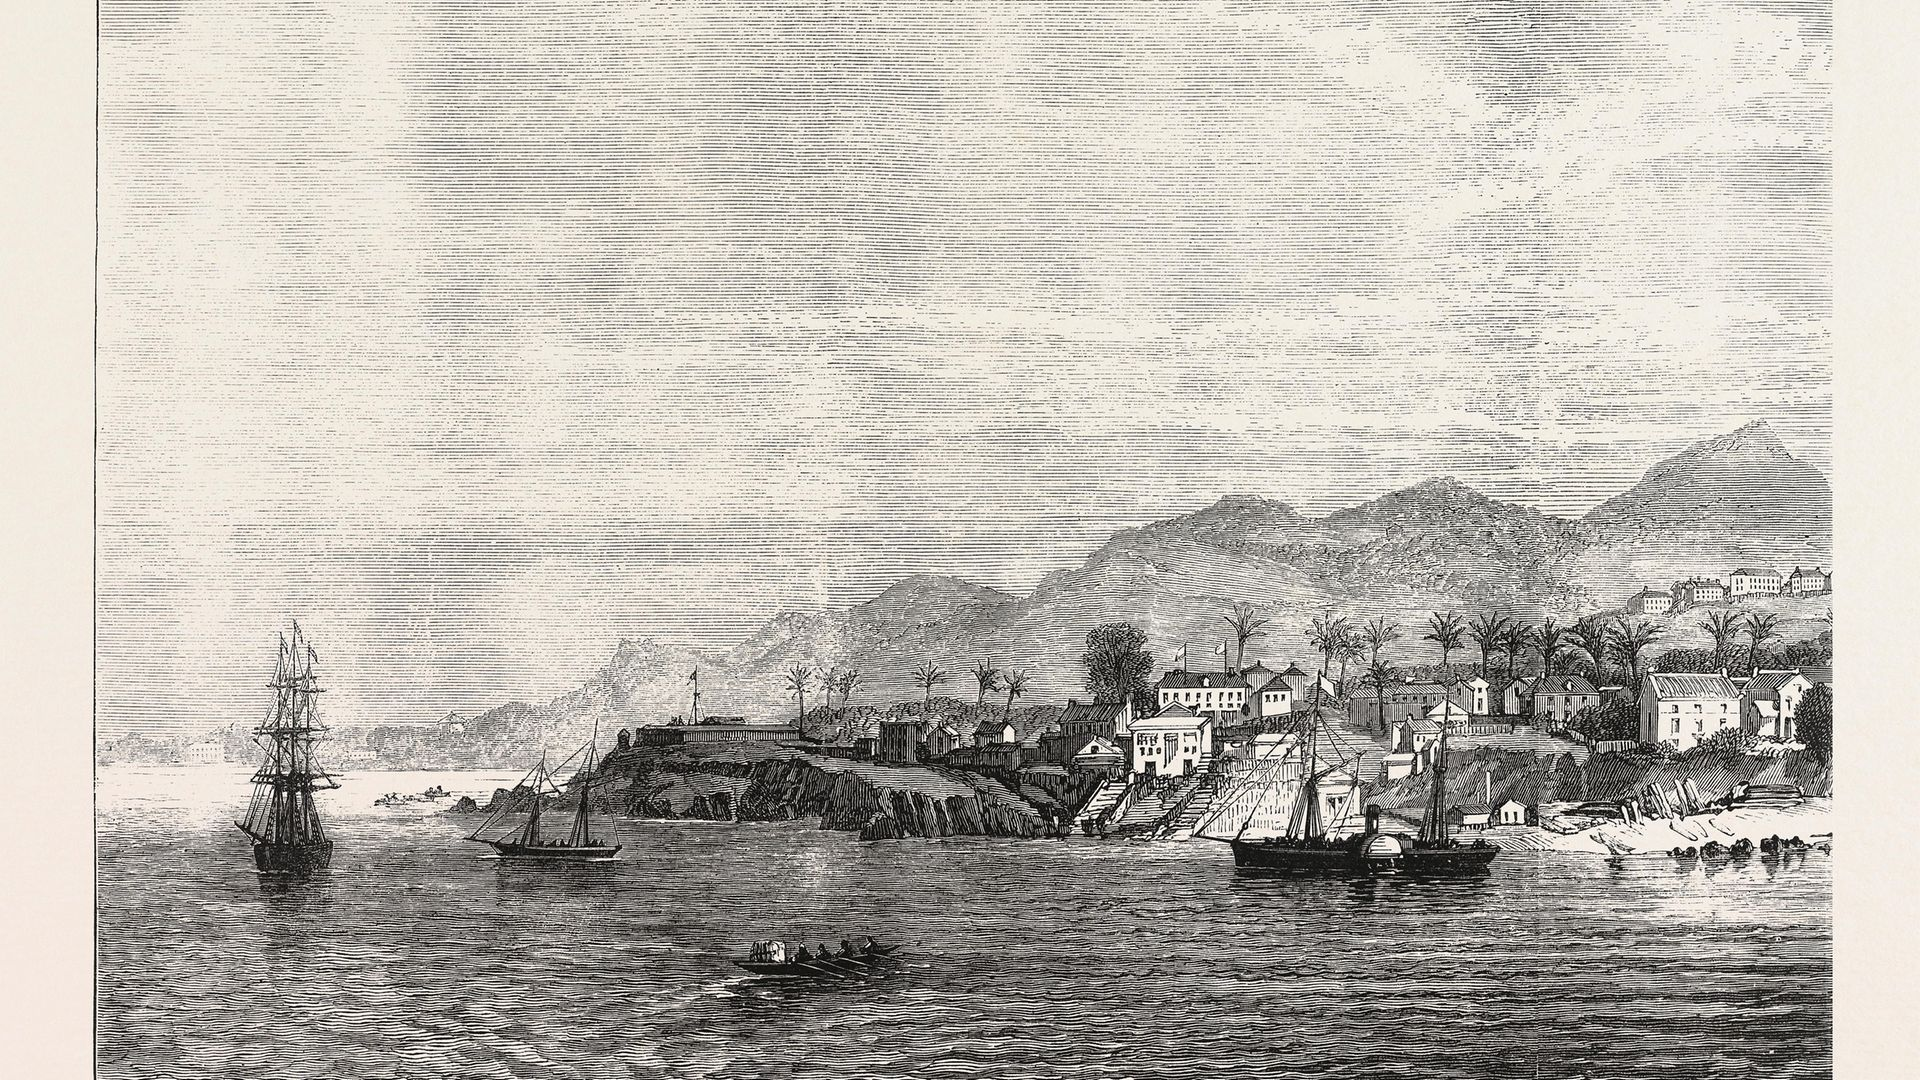 A 19th century image of Freetown, Sierra Leone - Credit: Universal Images Group via Getty